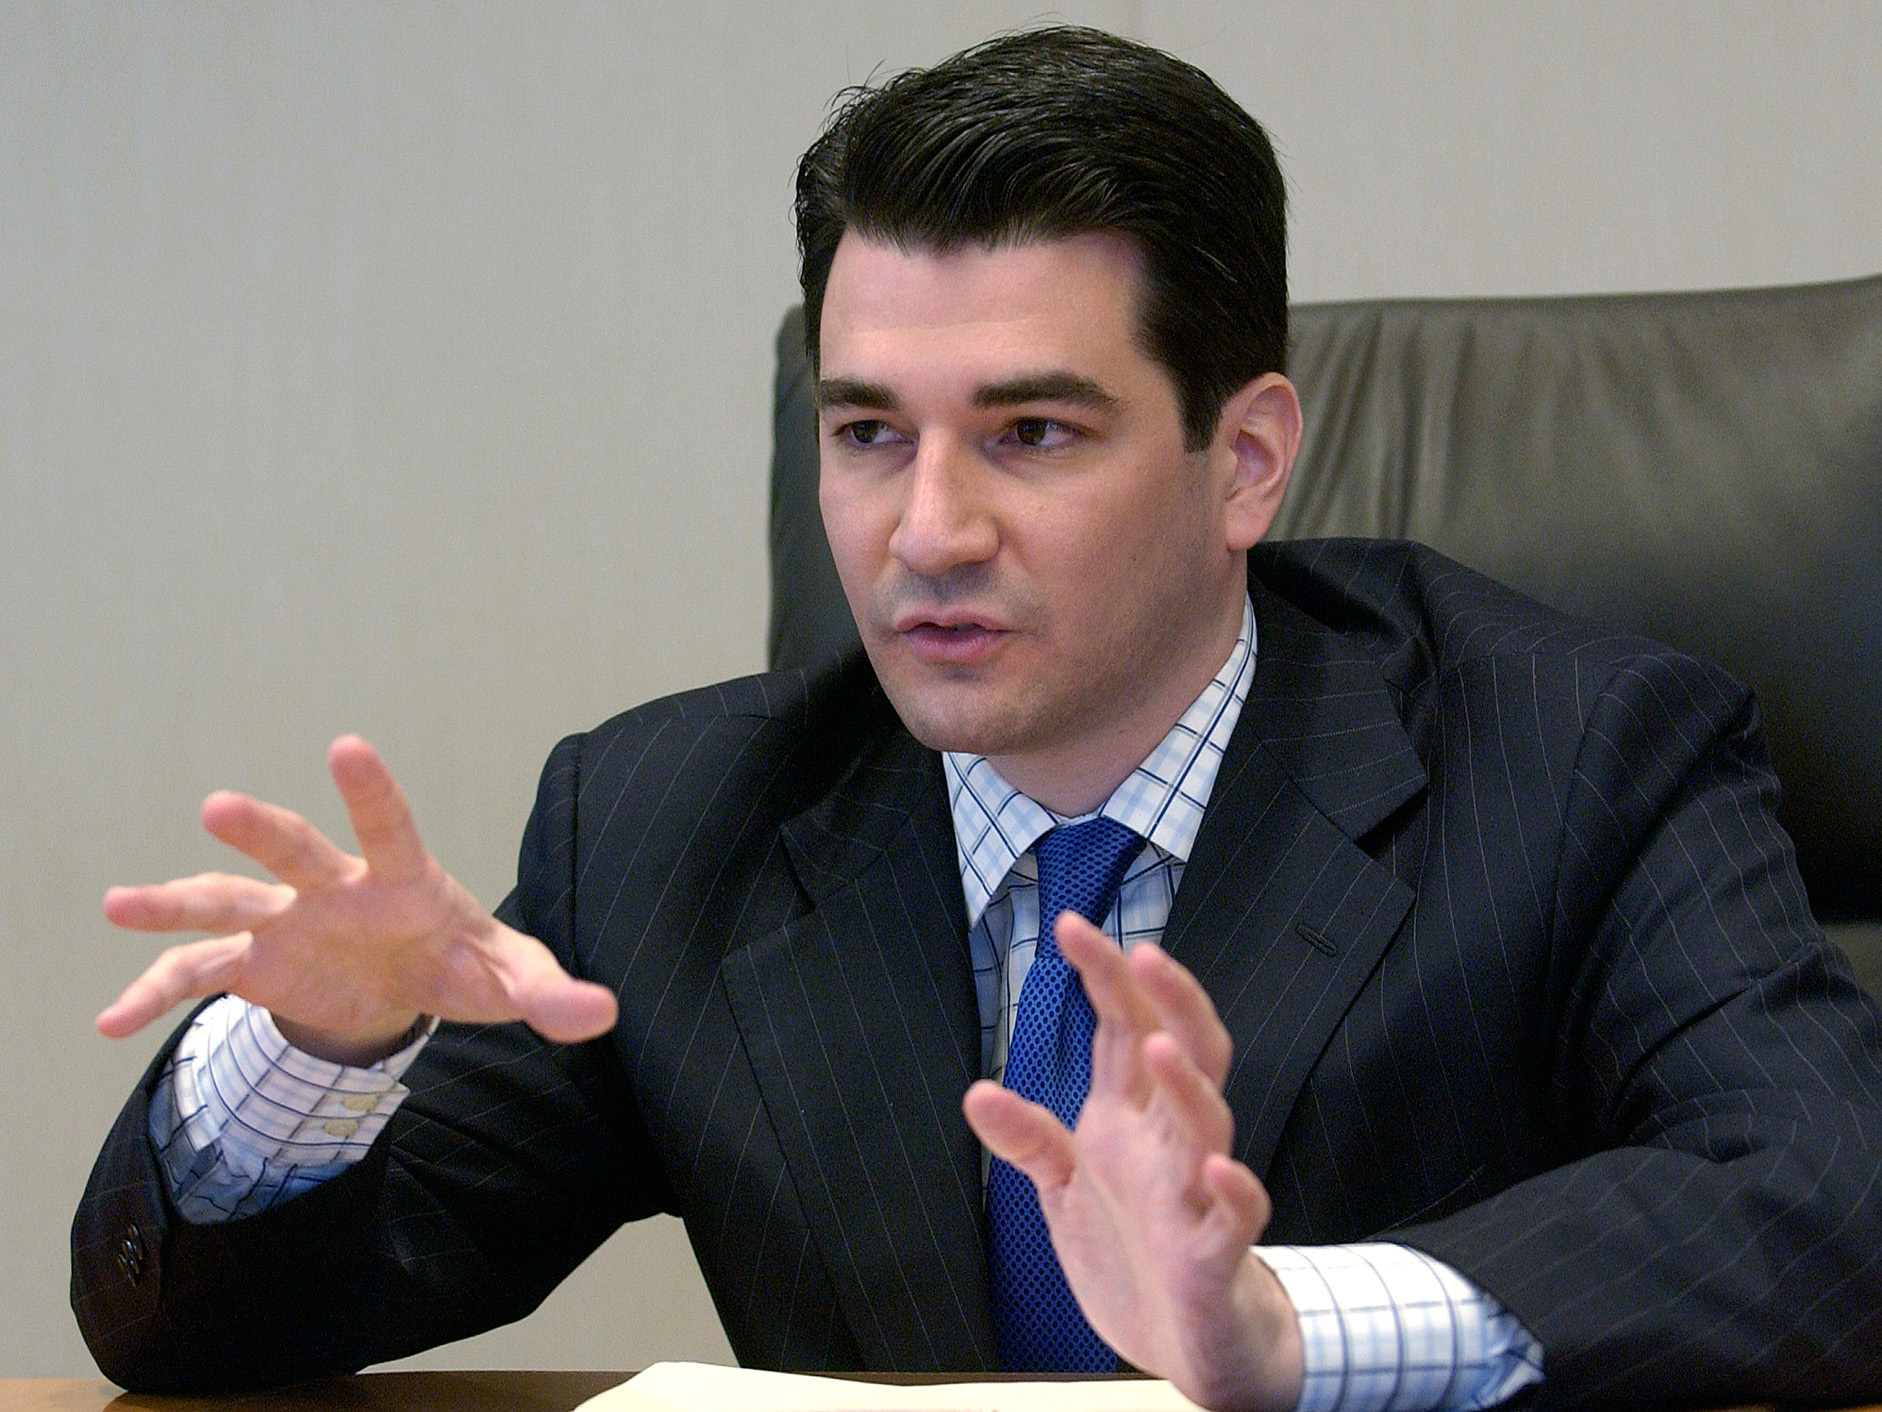 Scott Gottlieb FDA deputy commissioner for policy speaks to reporters at the Reuters Health summit in New York in 2005